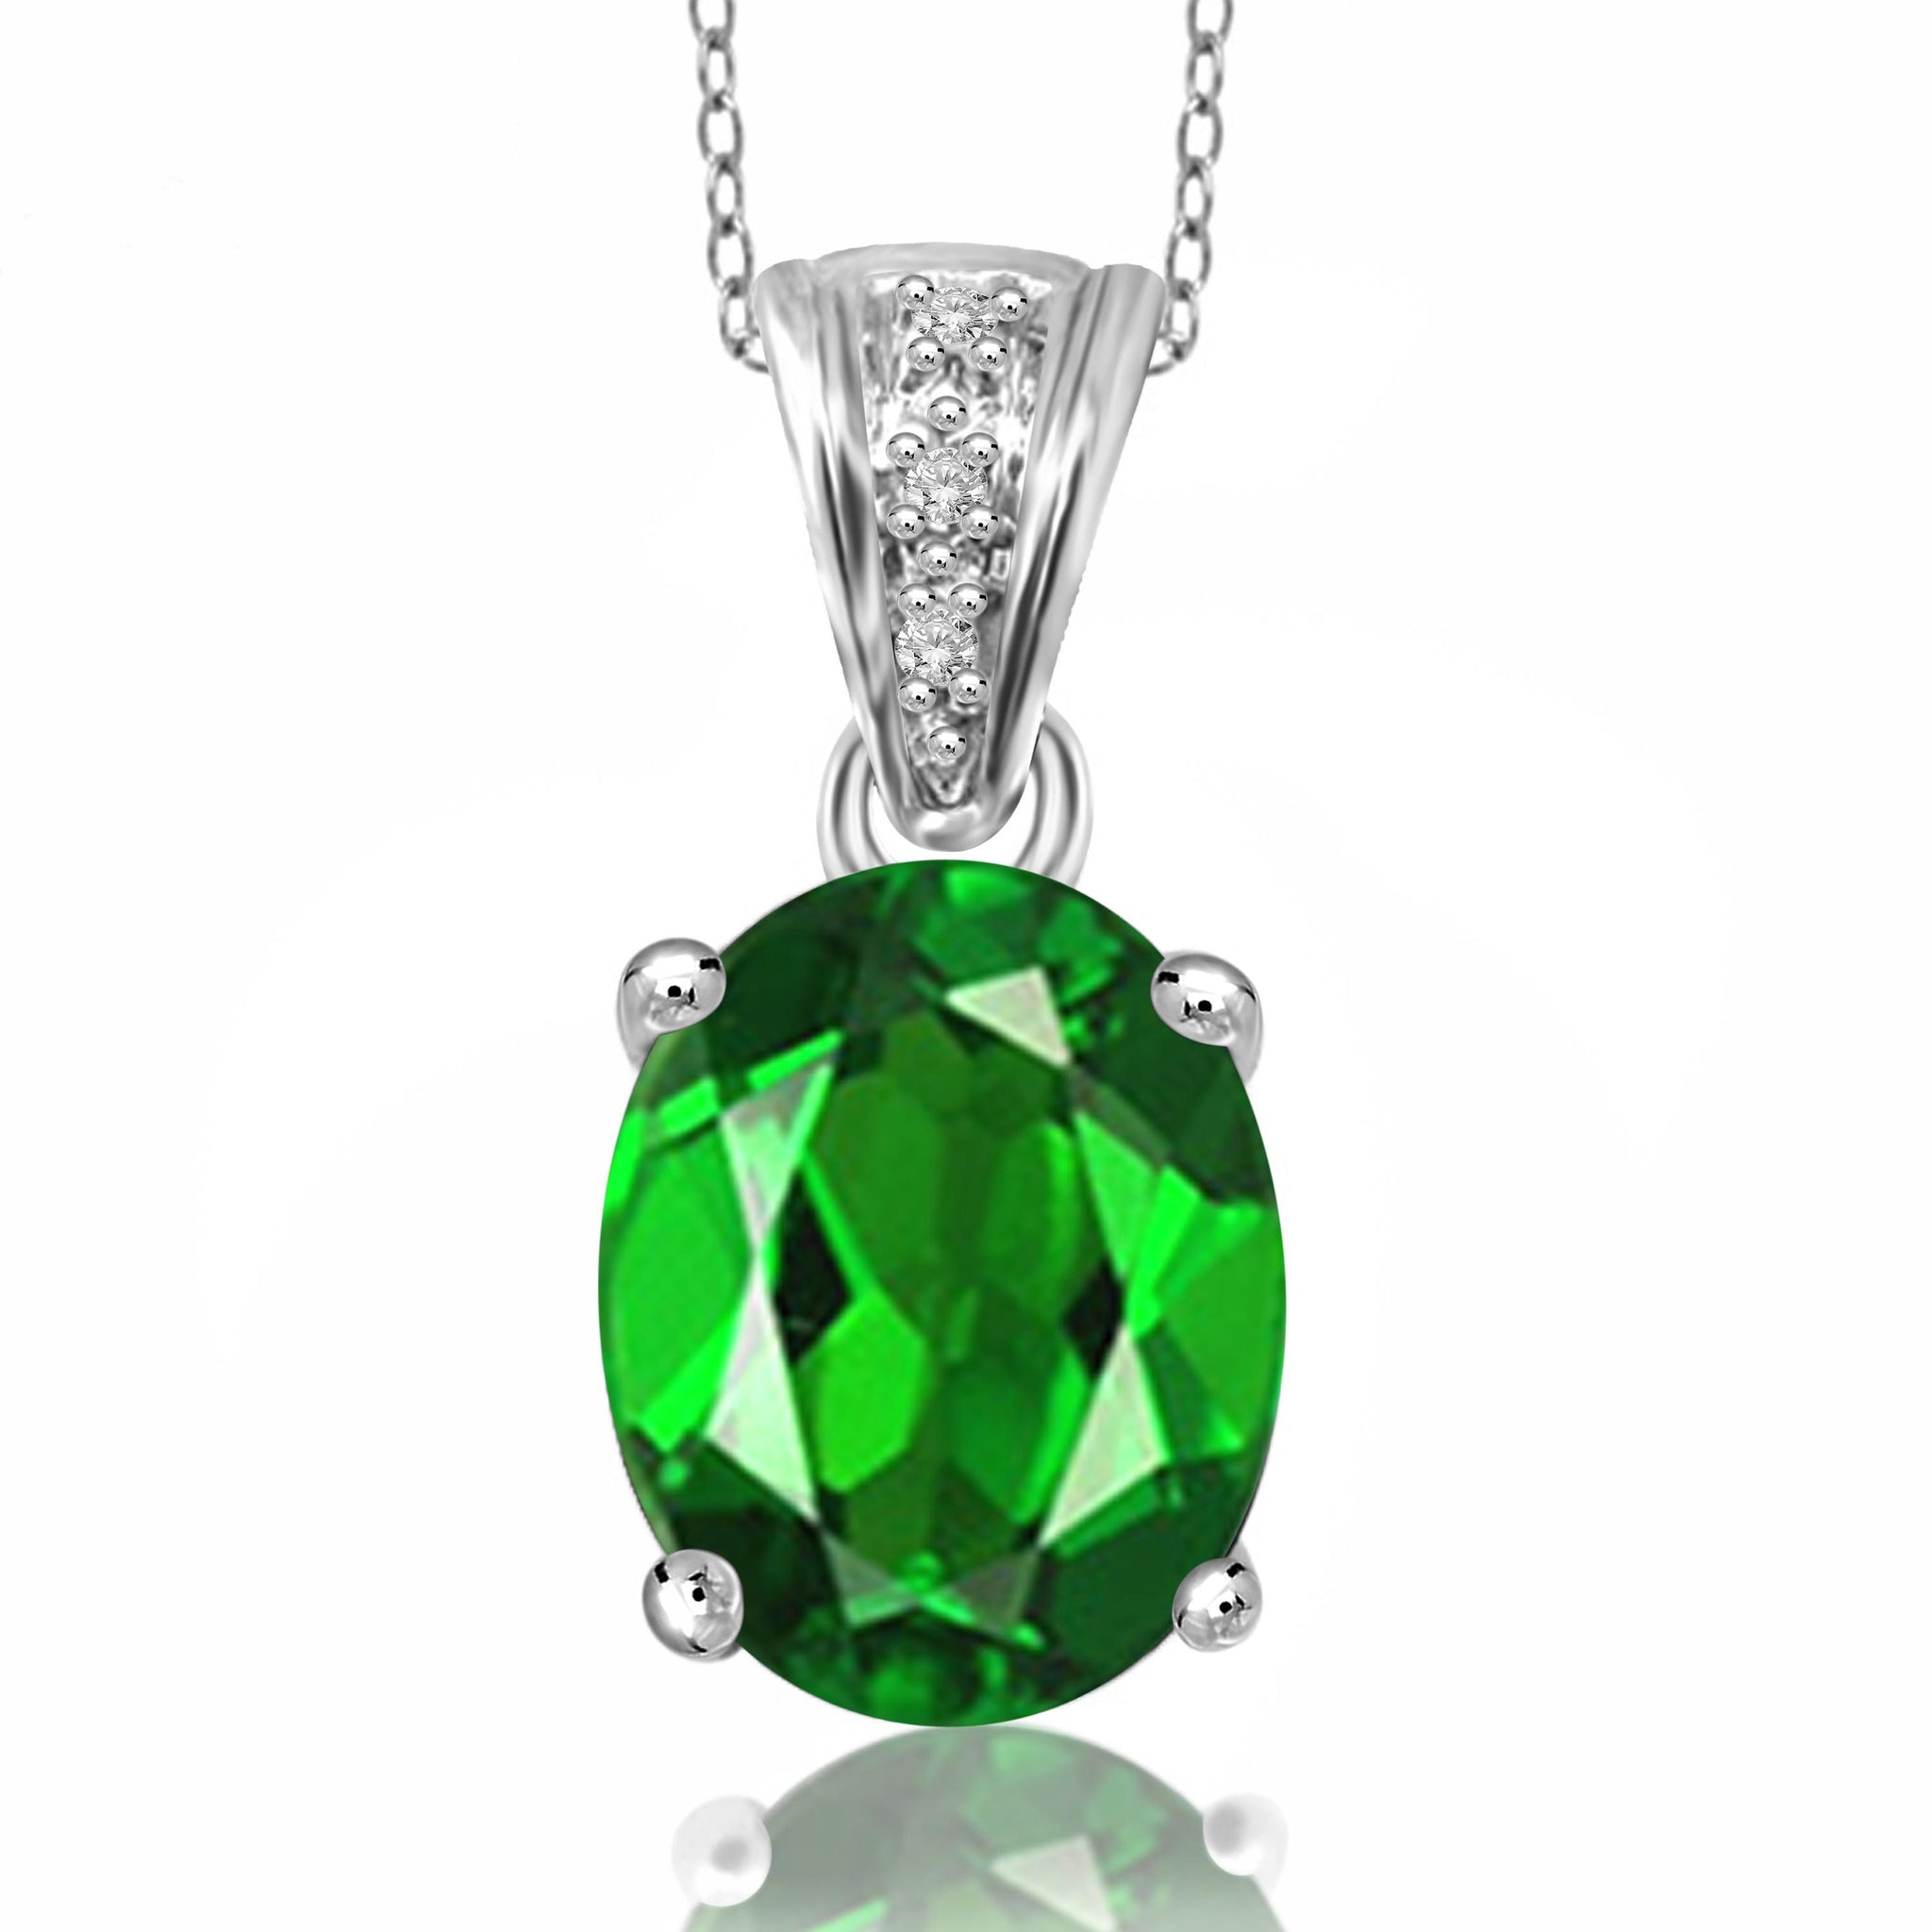 JewelonFire 1.50 Carat T.G.W. Chrome Diopside and White Diamond Accent Sterling Silver Pendant - Assorted Colors